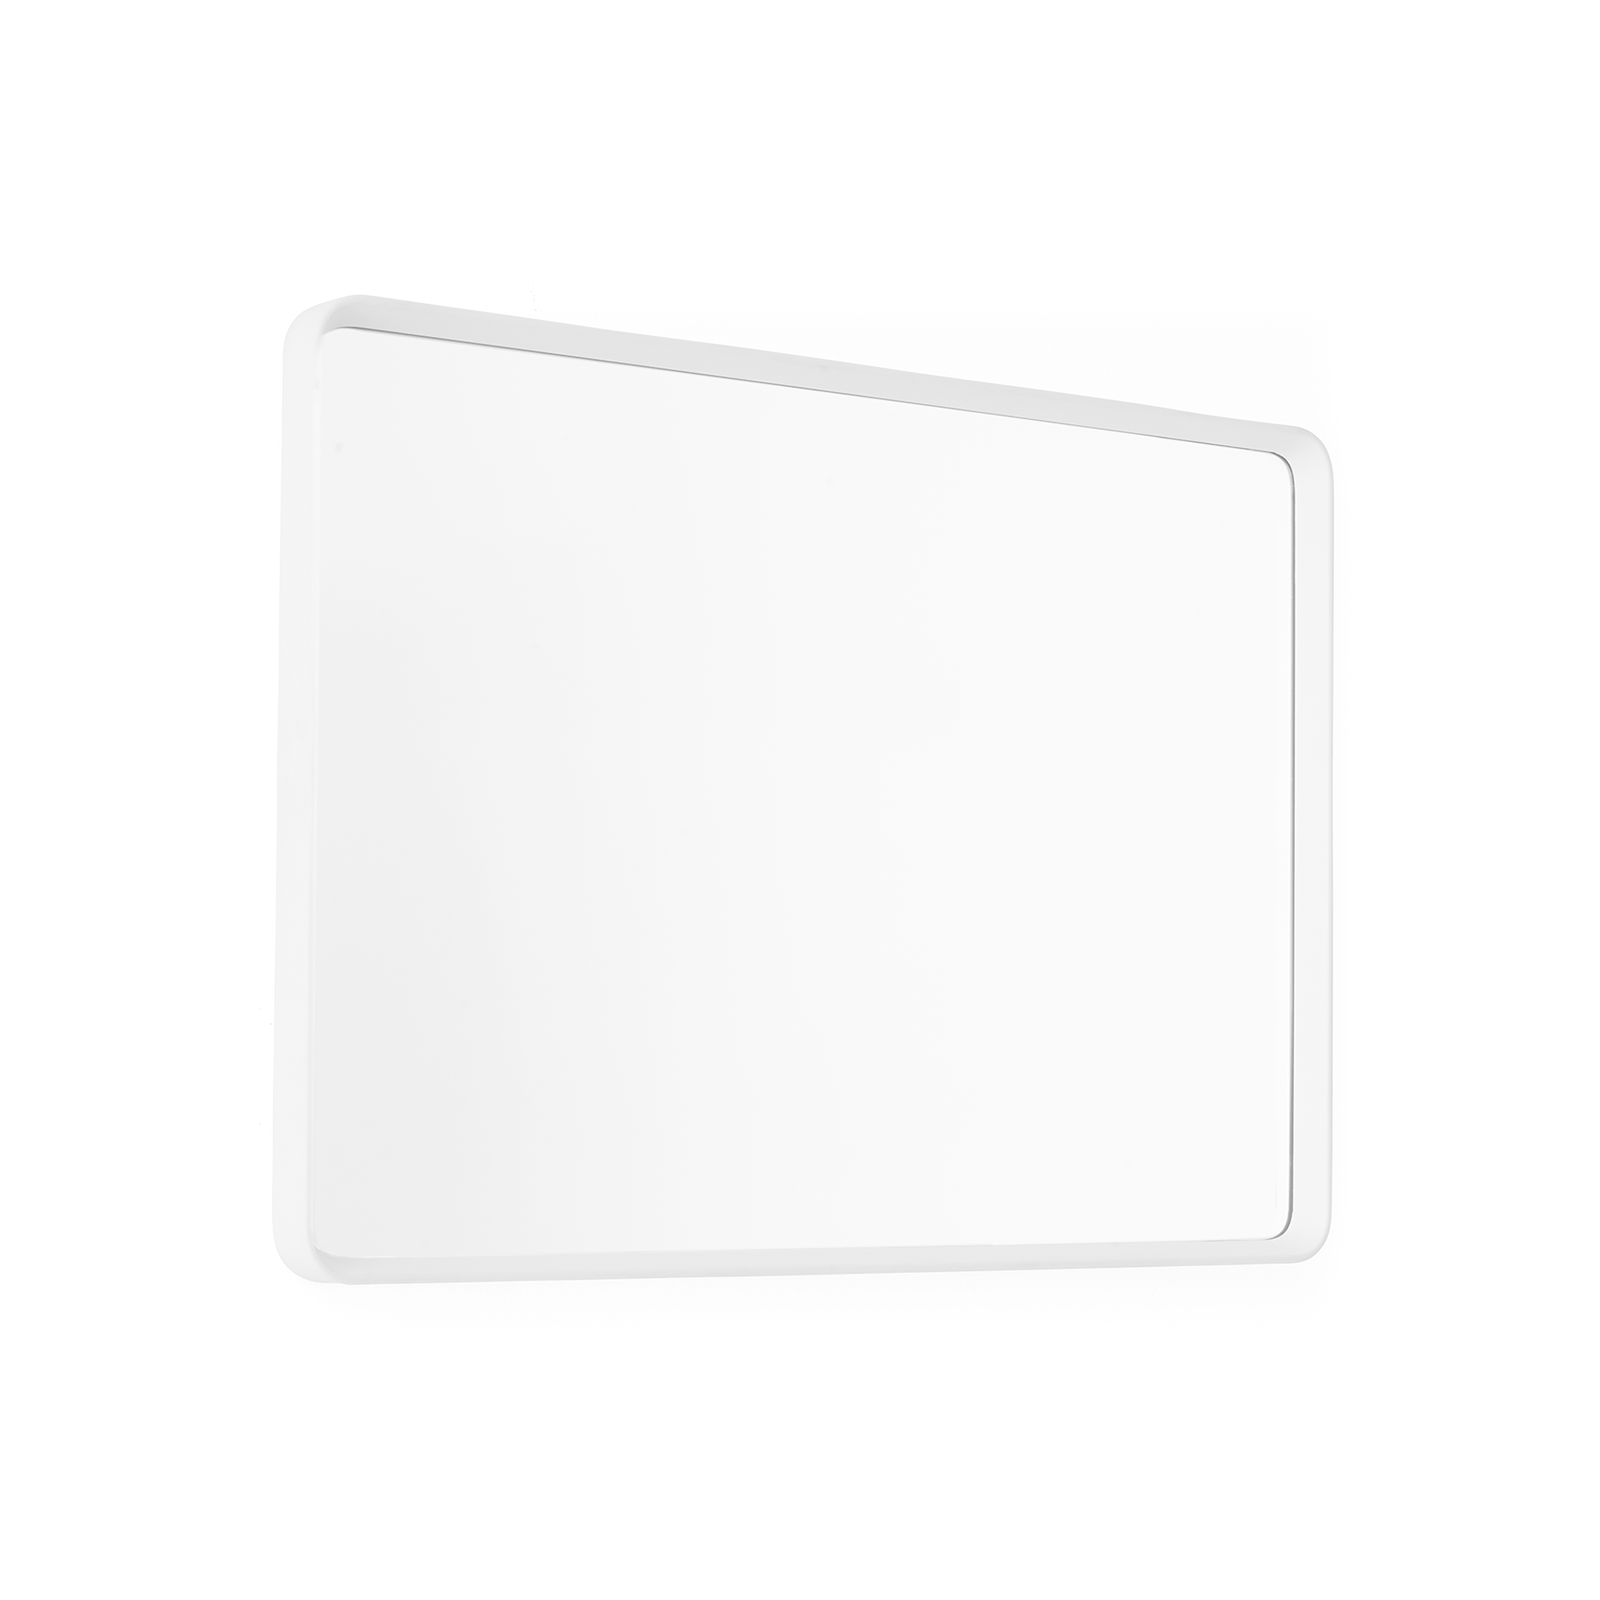 Menu Norm Wall Mirror Rectangular 70x50cm 諾門同名系列 長方形 壁面掛鏡